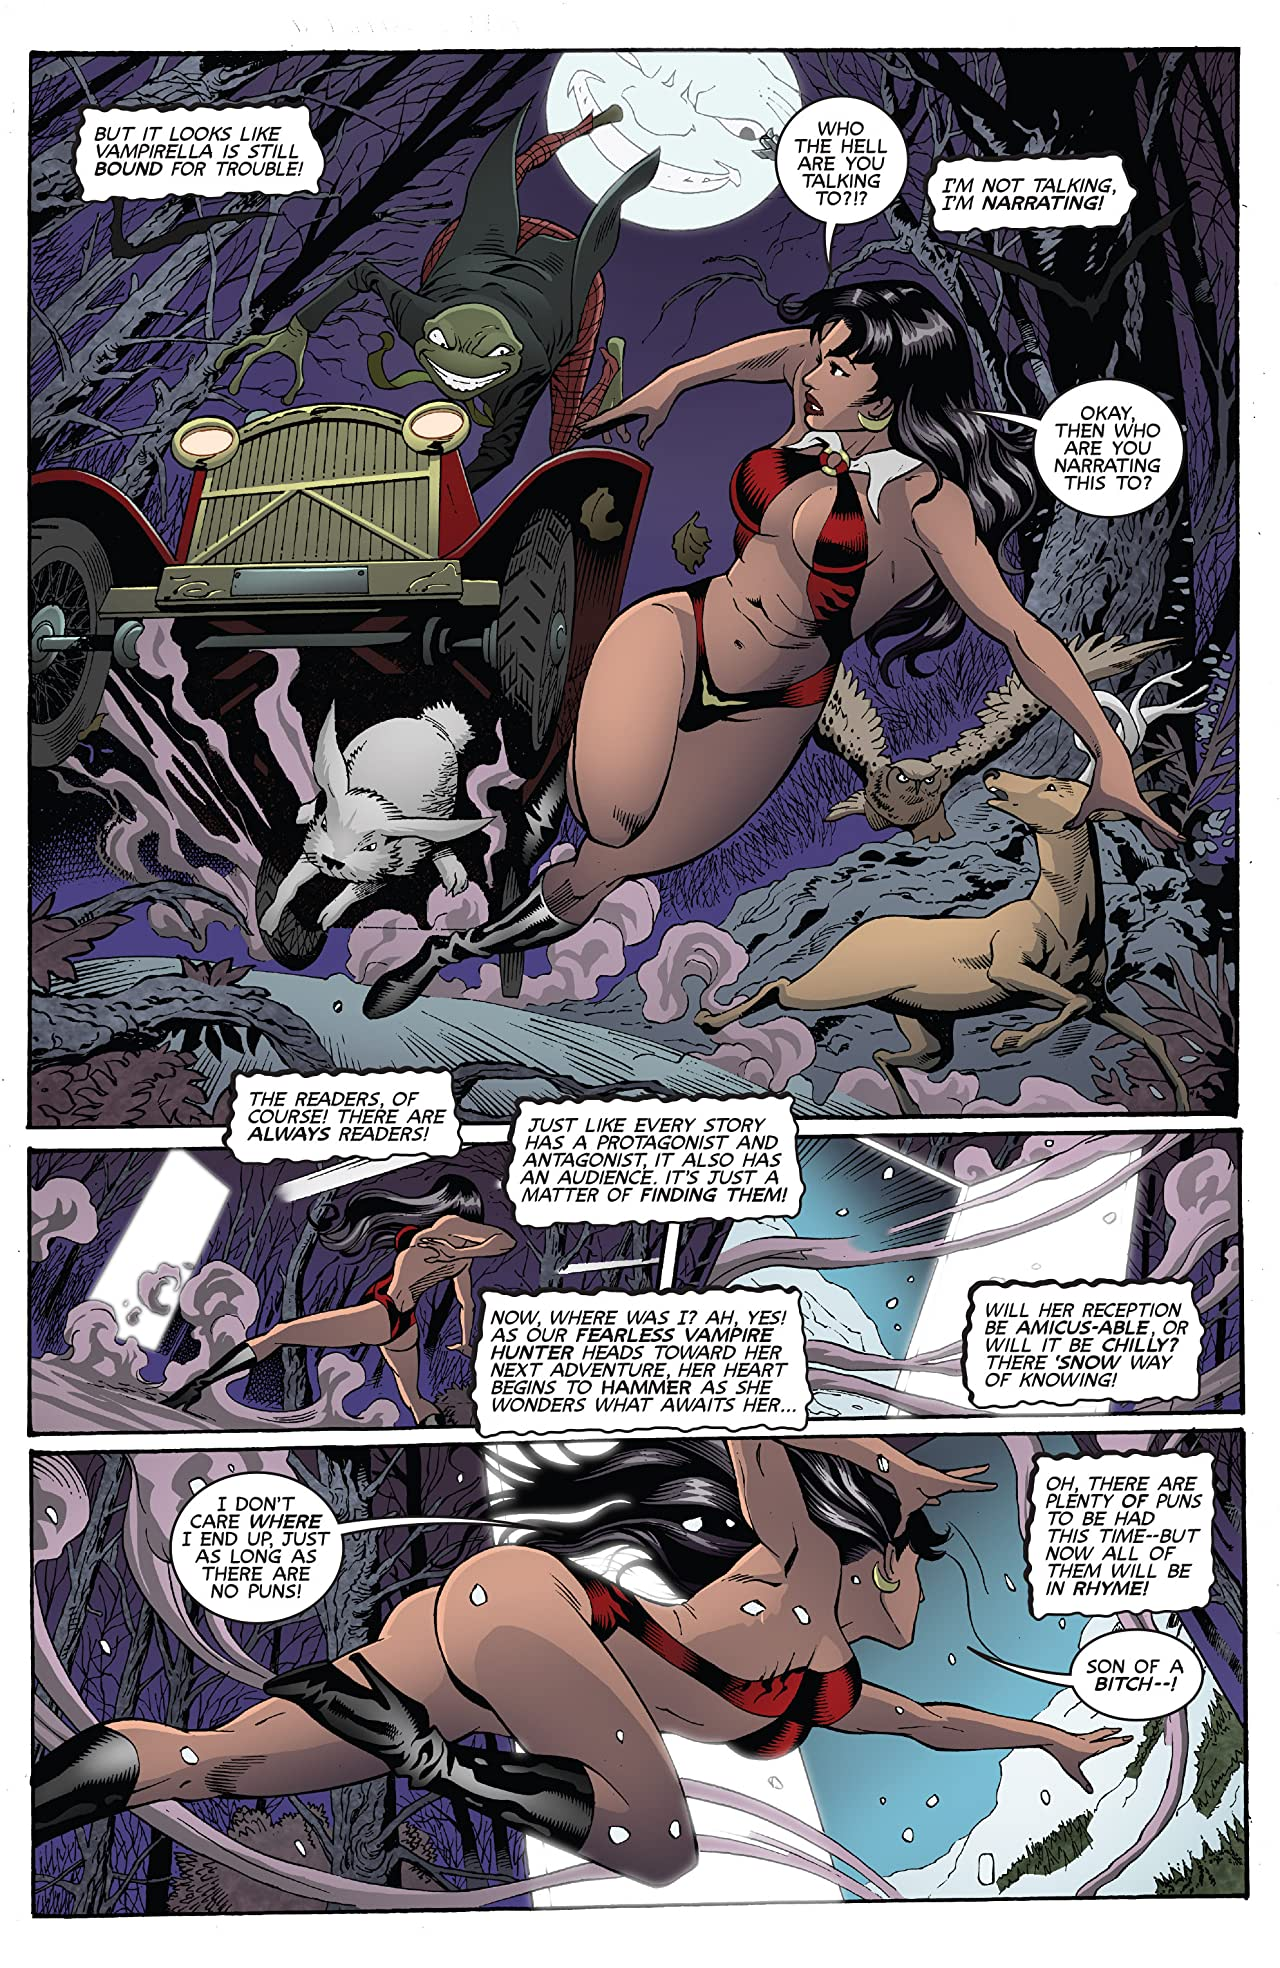 Vampirella: Feary Tales #2 (of 5): Digital Exclusive Edition